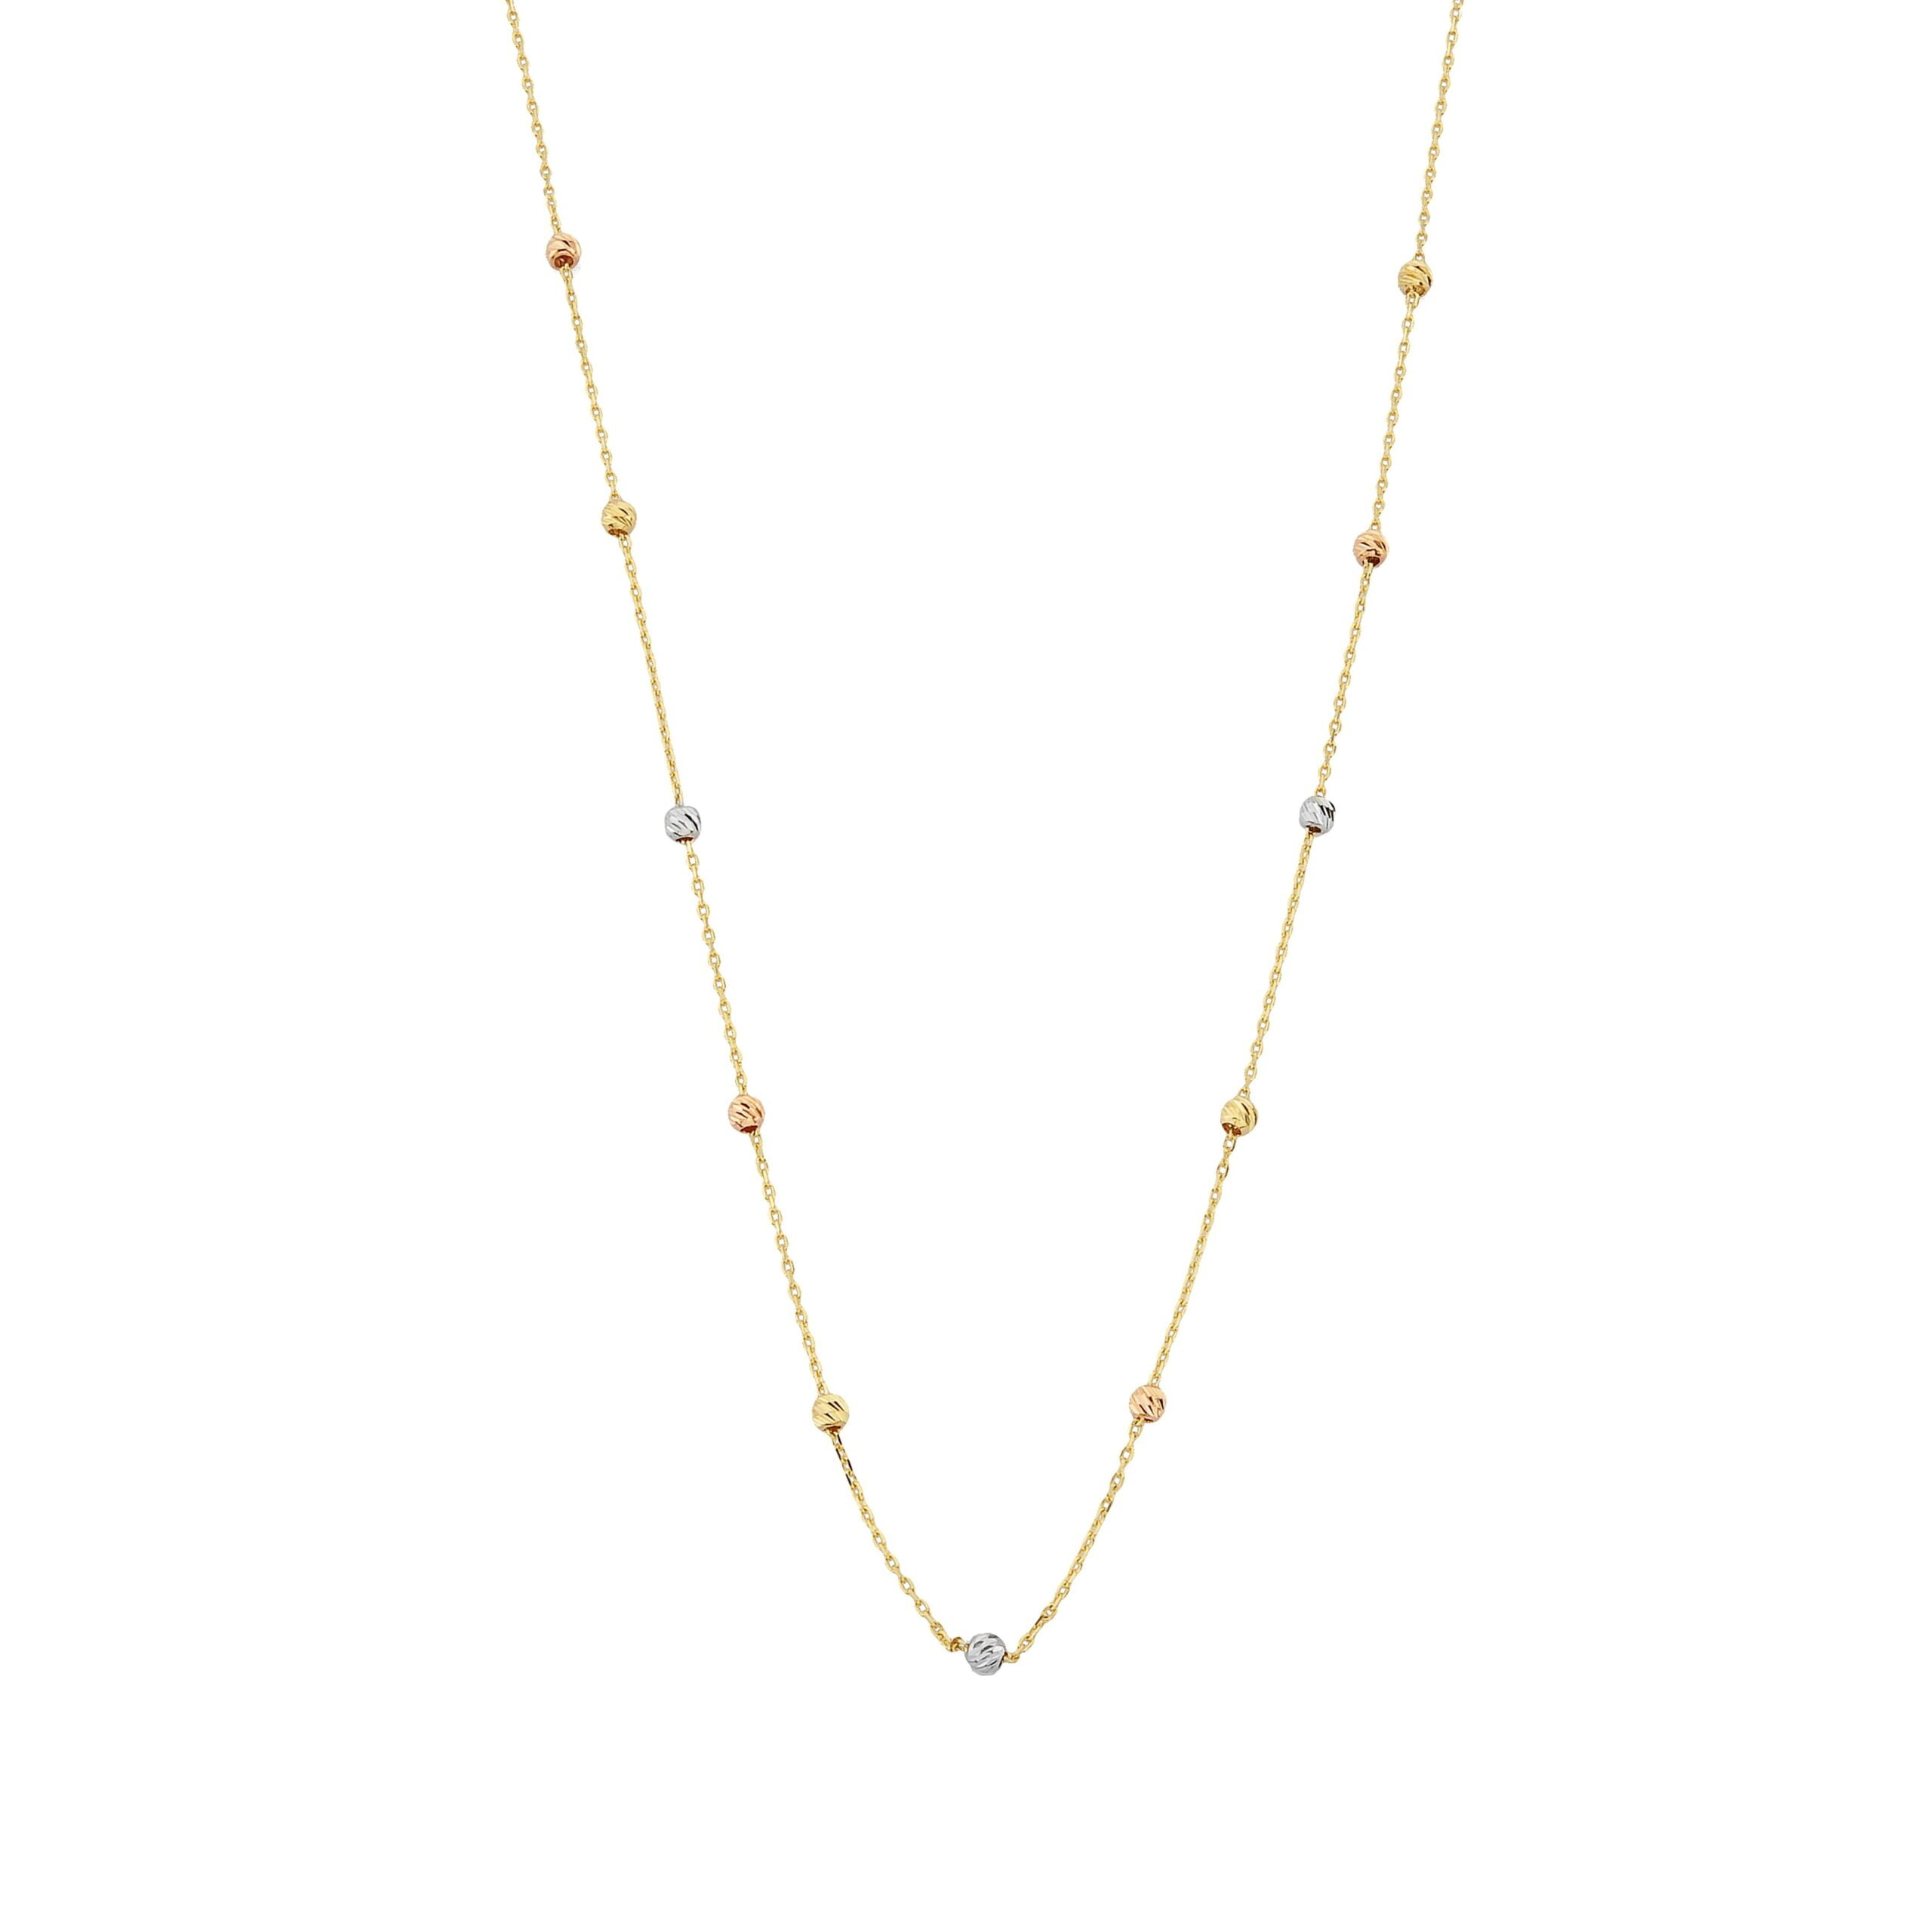 Row Chain Beaded Italian Balls Charm Dainty Delicate Necklace for Women 14K Real Solid Gold Christmas Birthday Mother's Day Gift